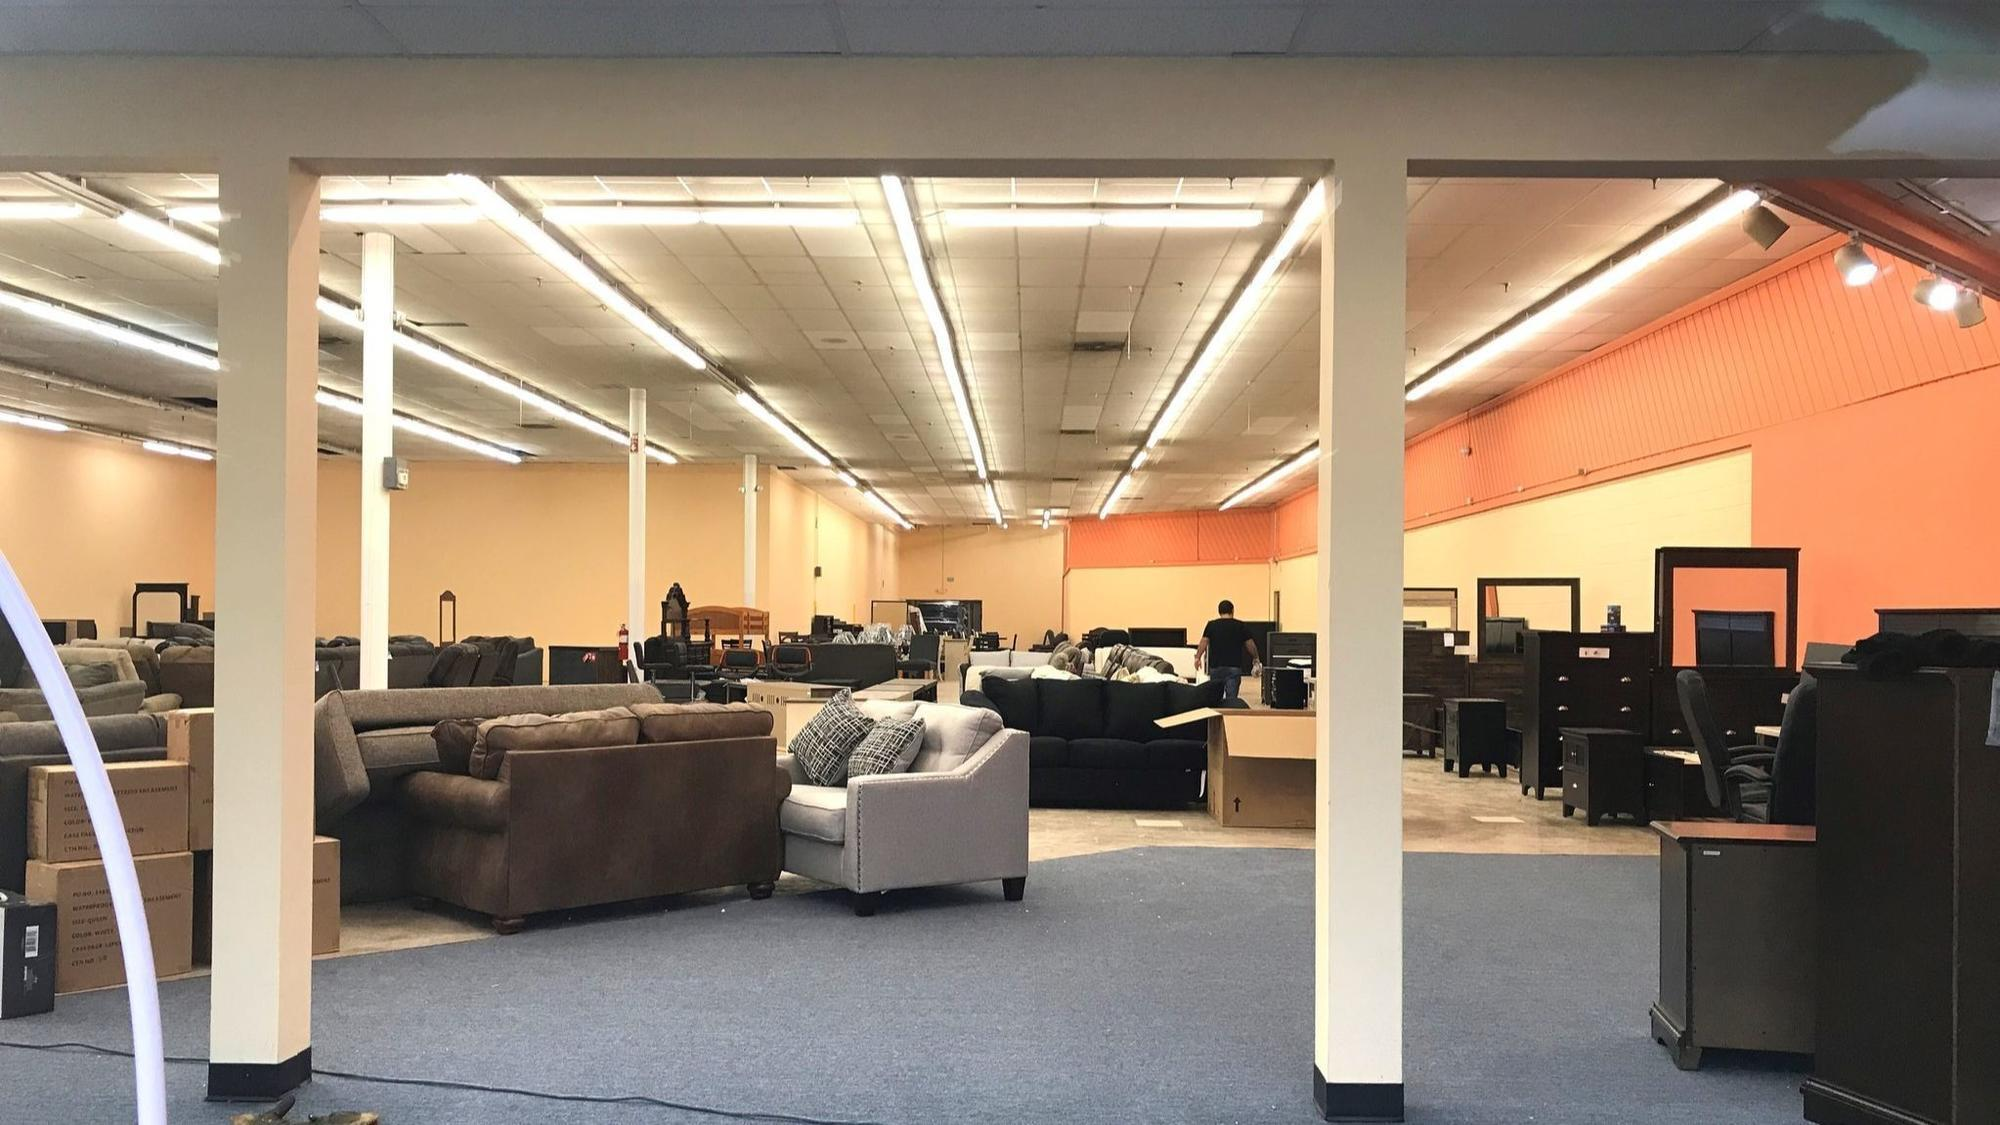 Lehigh Valley Area S Third Just Furniture Opening Soon Business Cycle